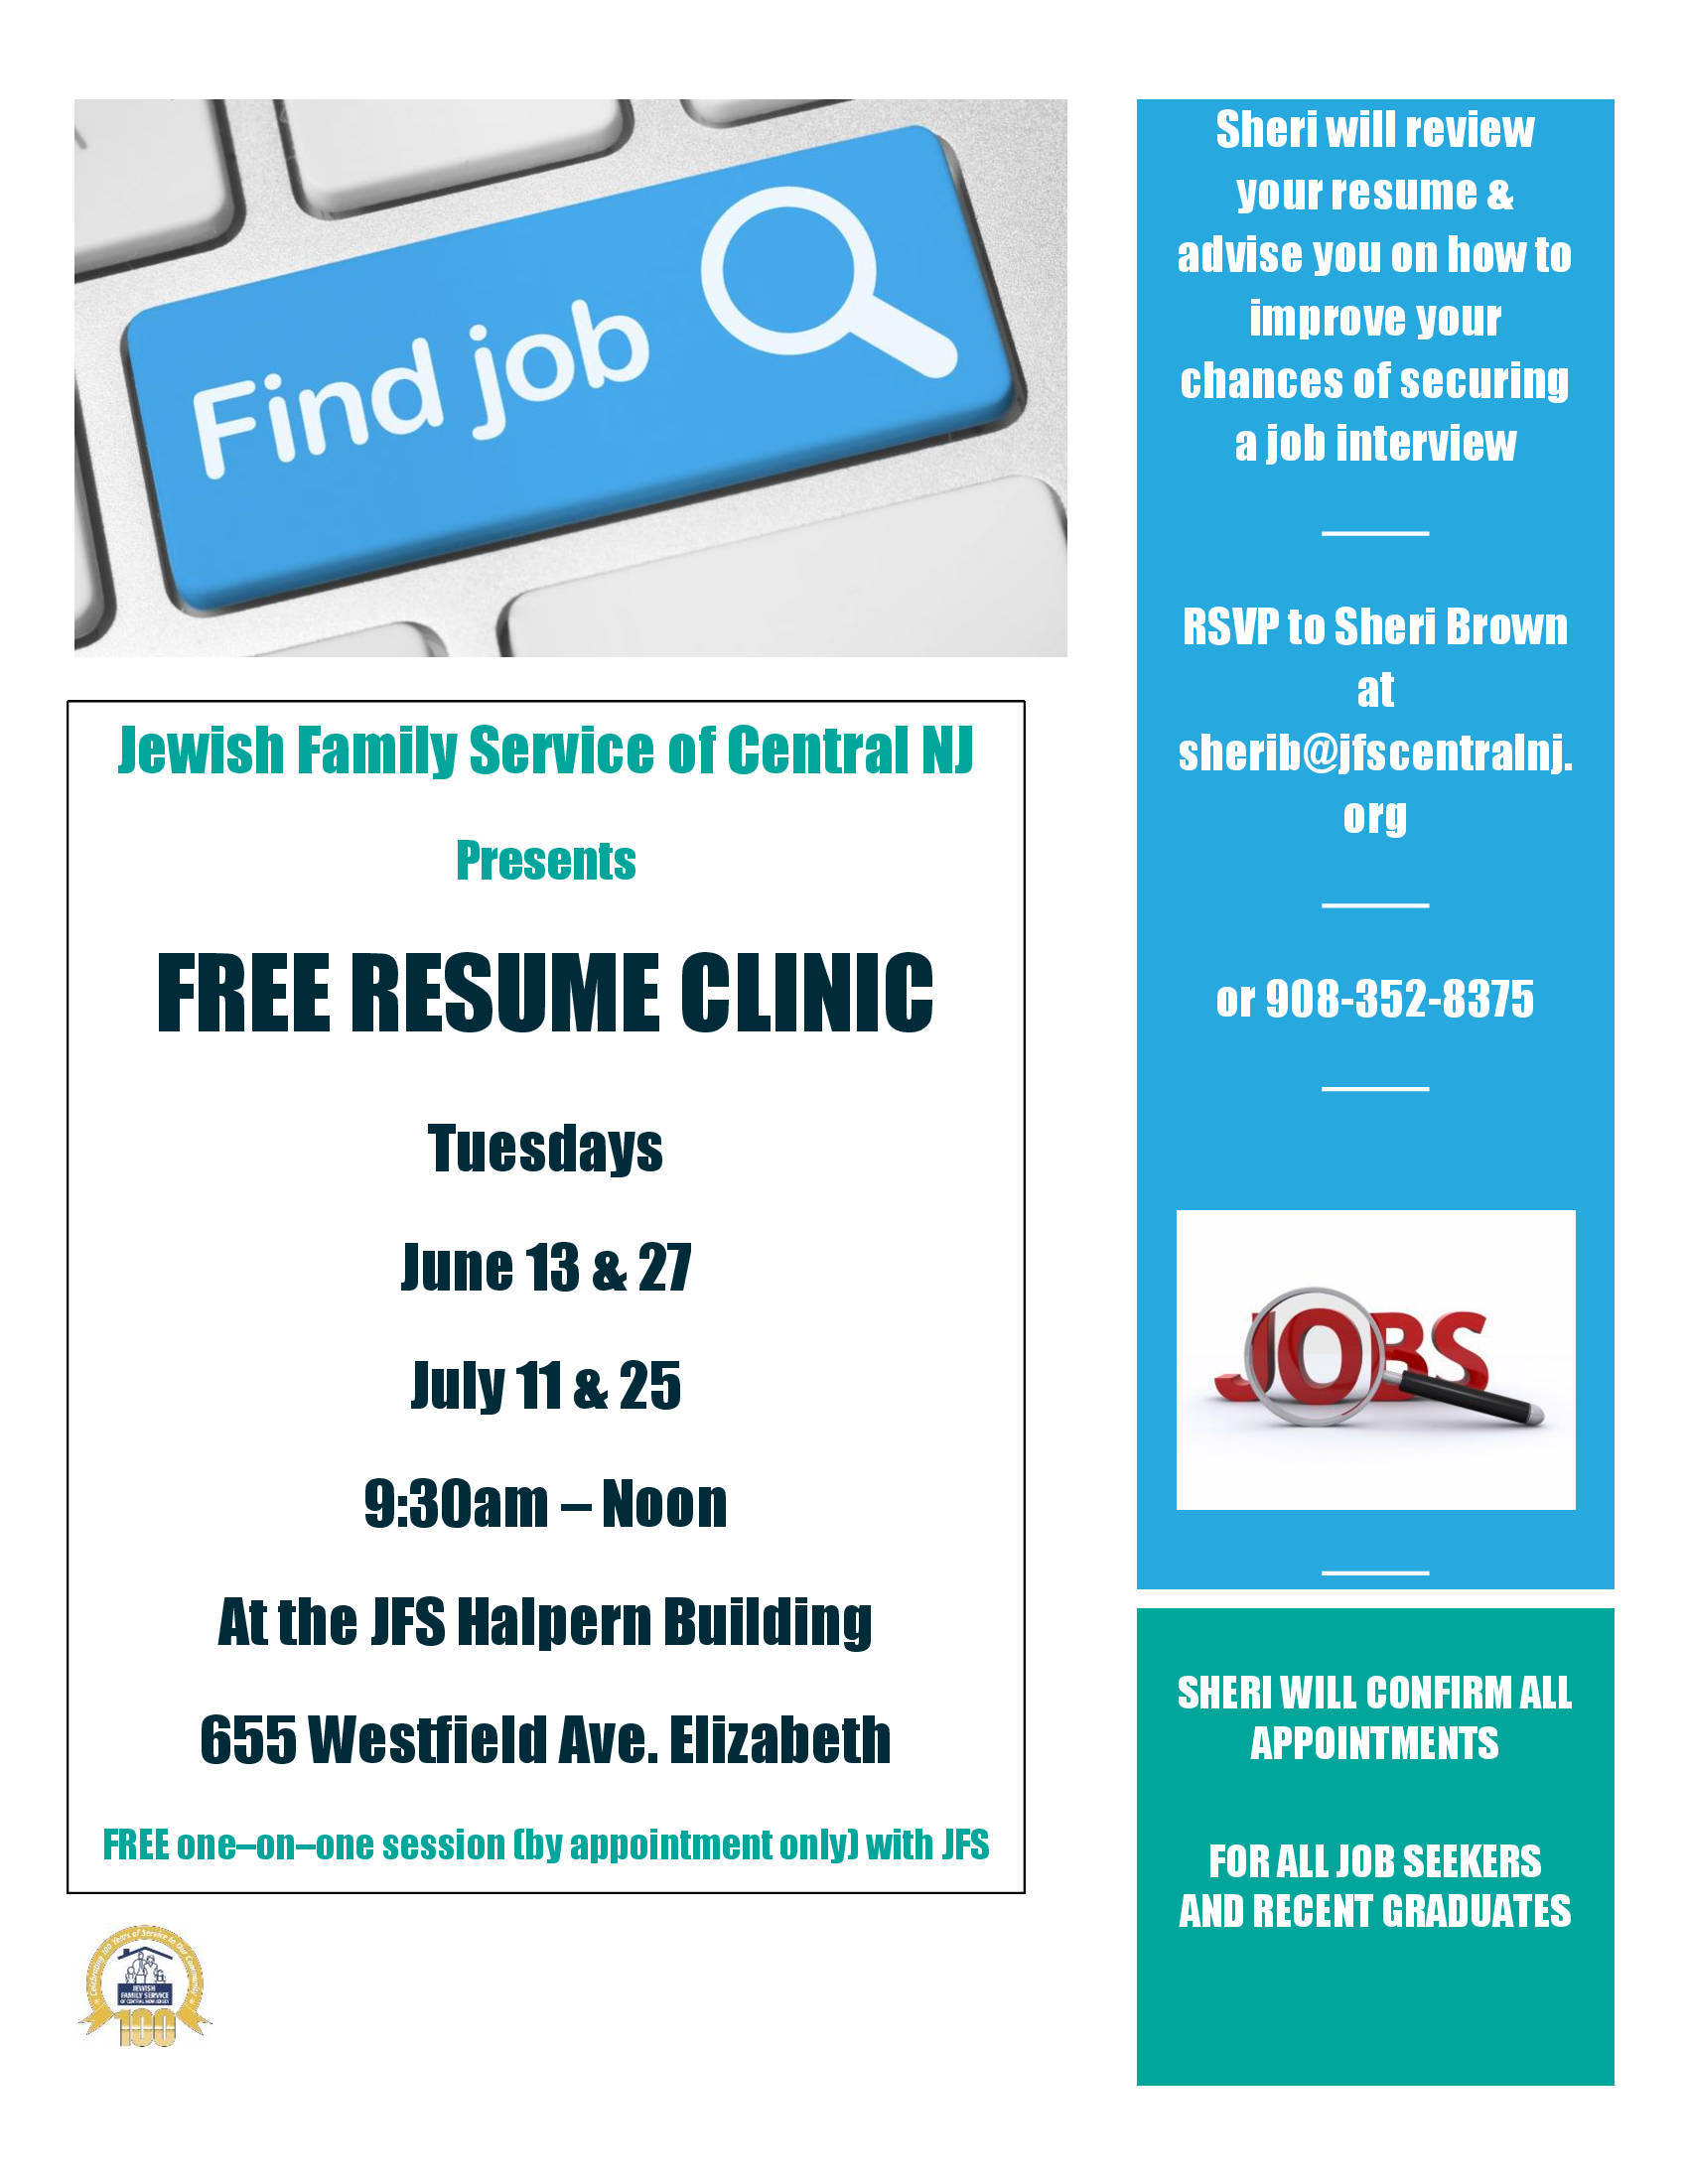 free resume clinic to take place at jewish family service